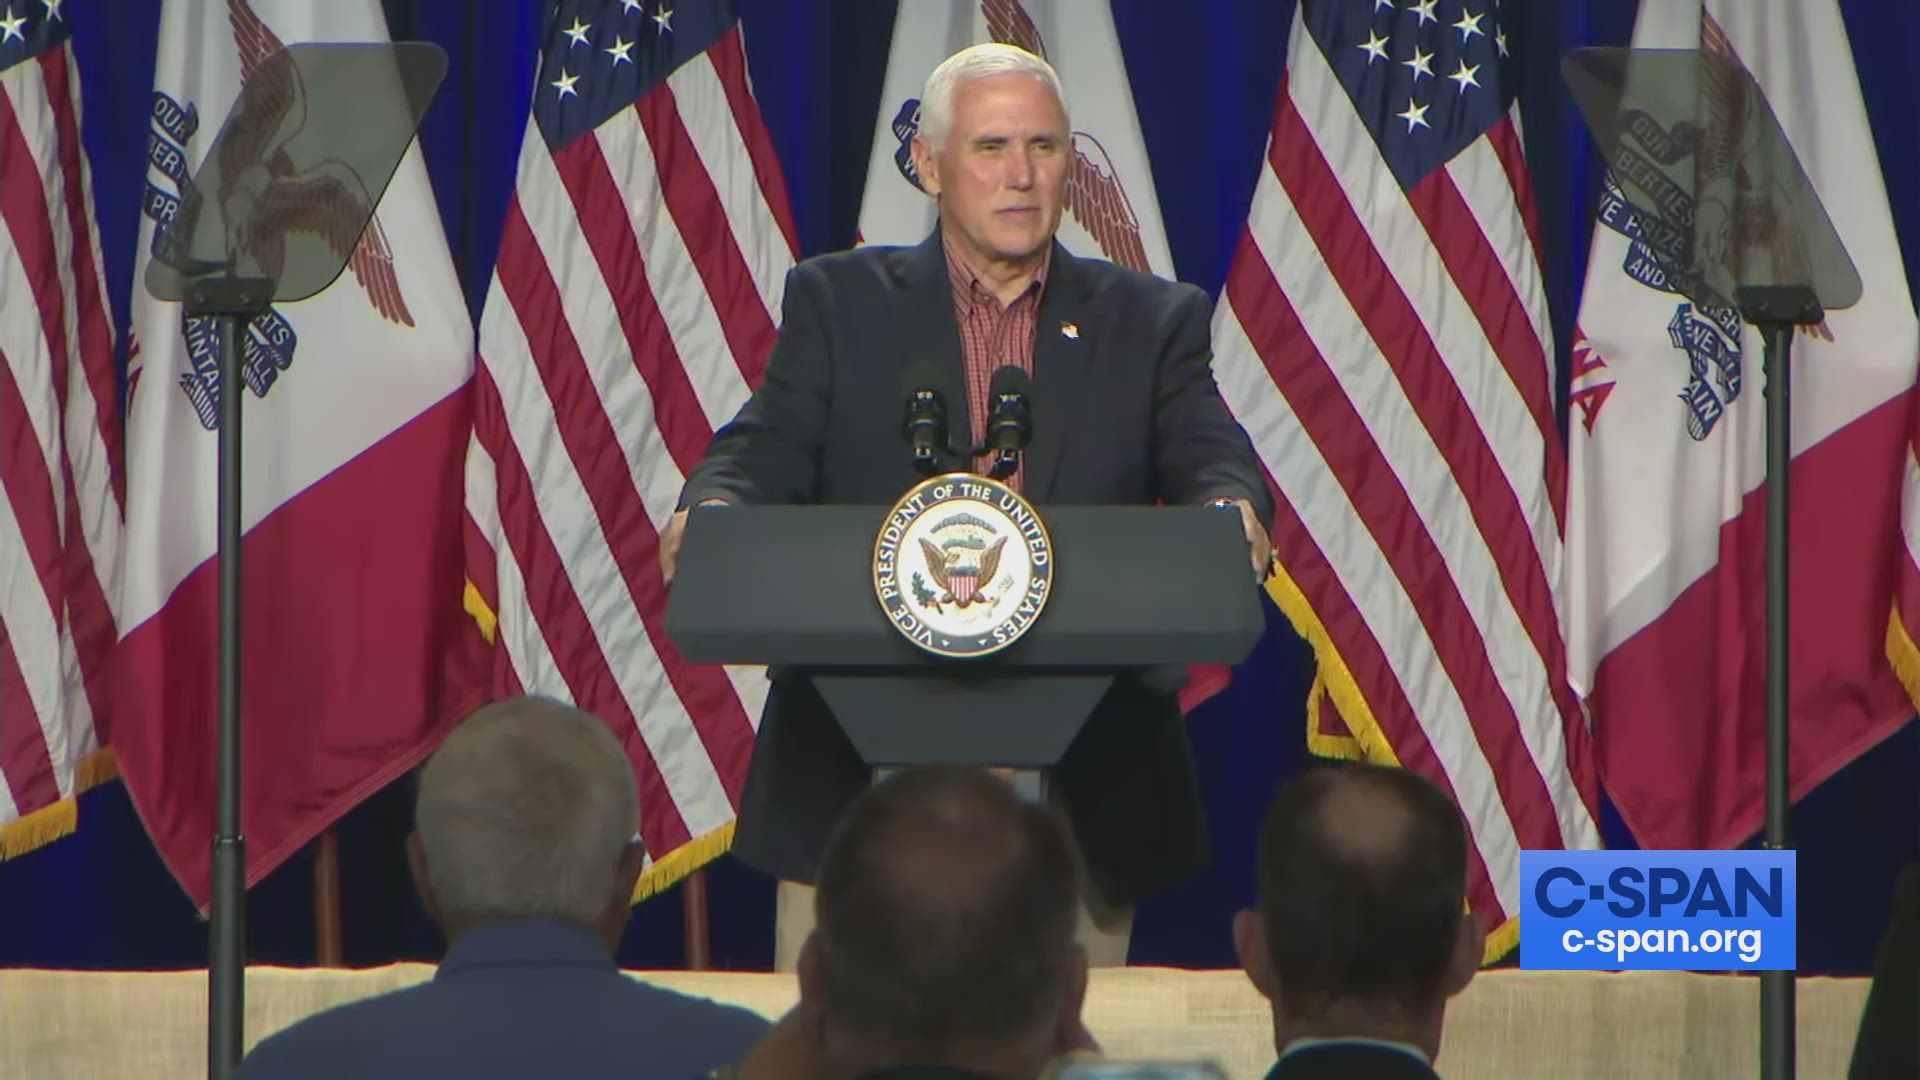 Vice President Pence Meets With Farmers In Des Moines Iowa C Span Org